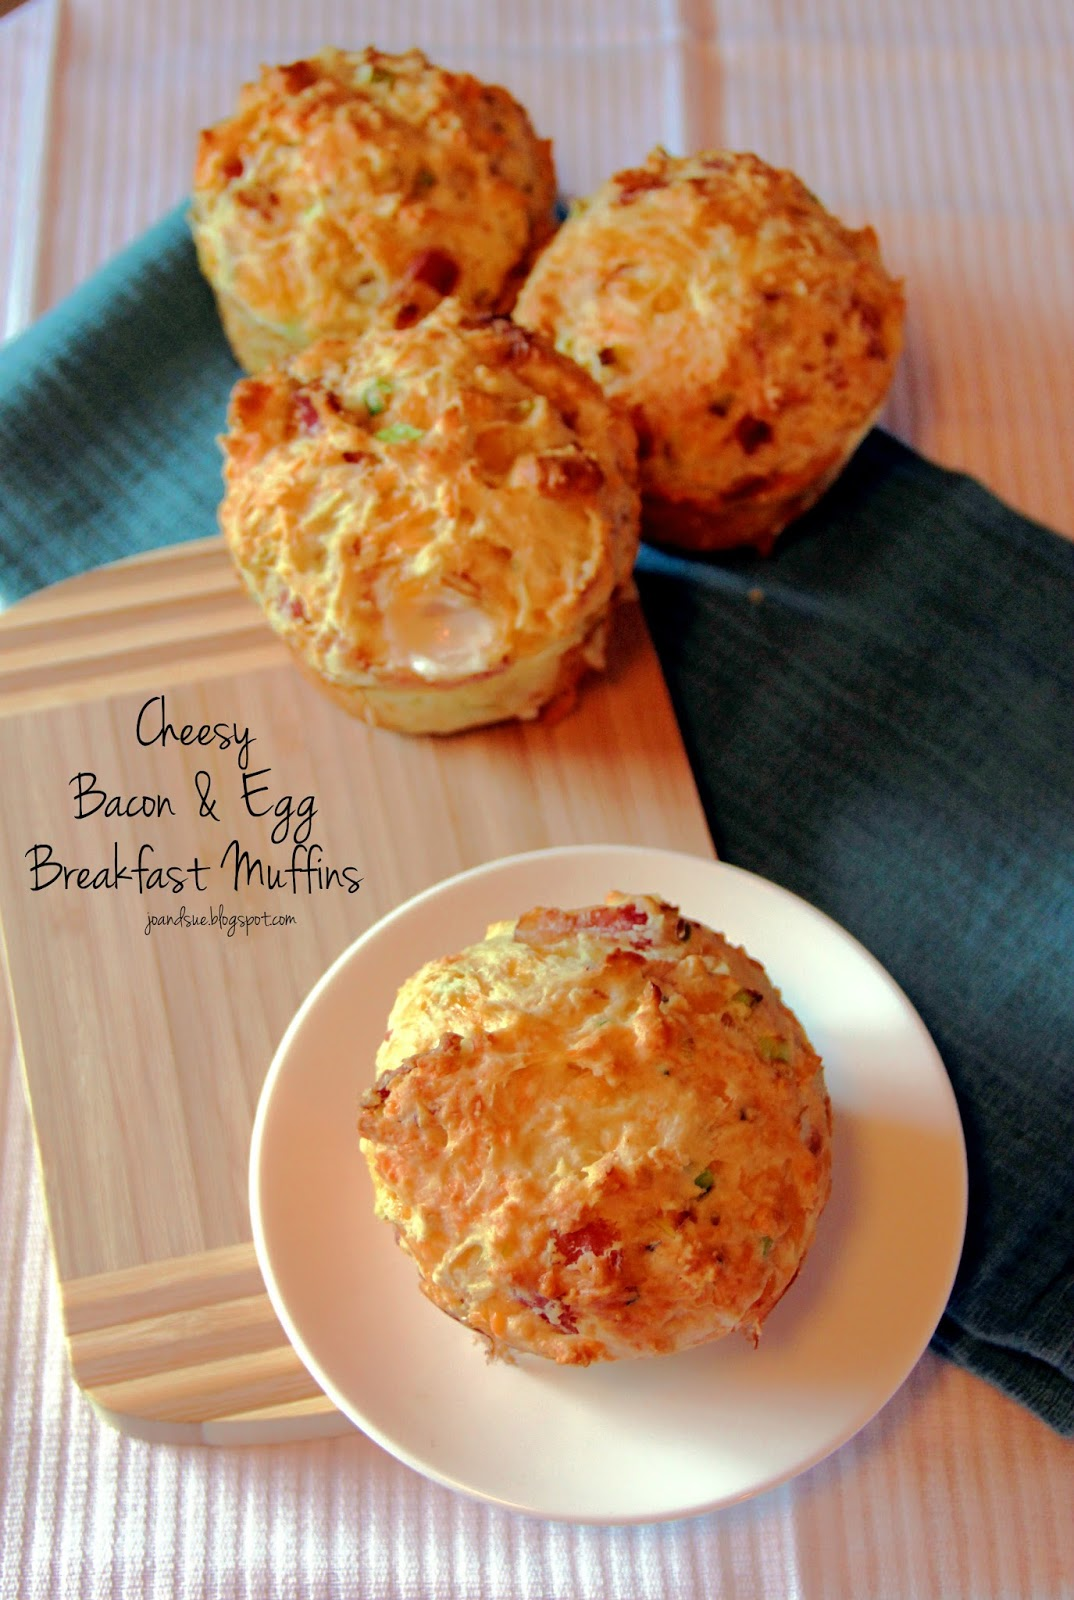 Jo and Sue: Cheesy Bacon & Egg Breakfast Muffins